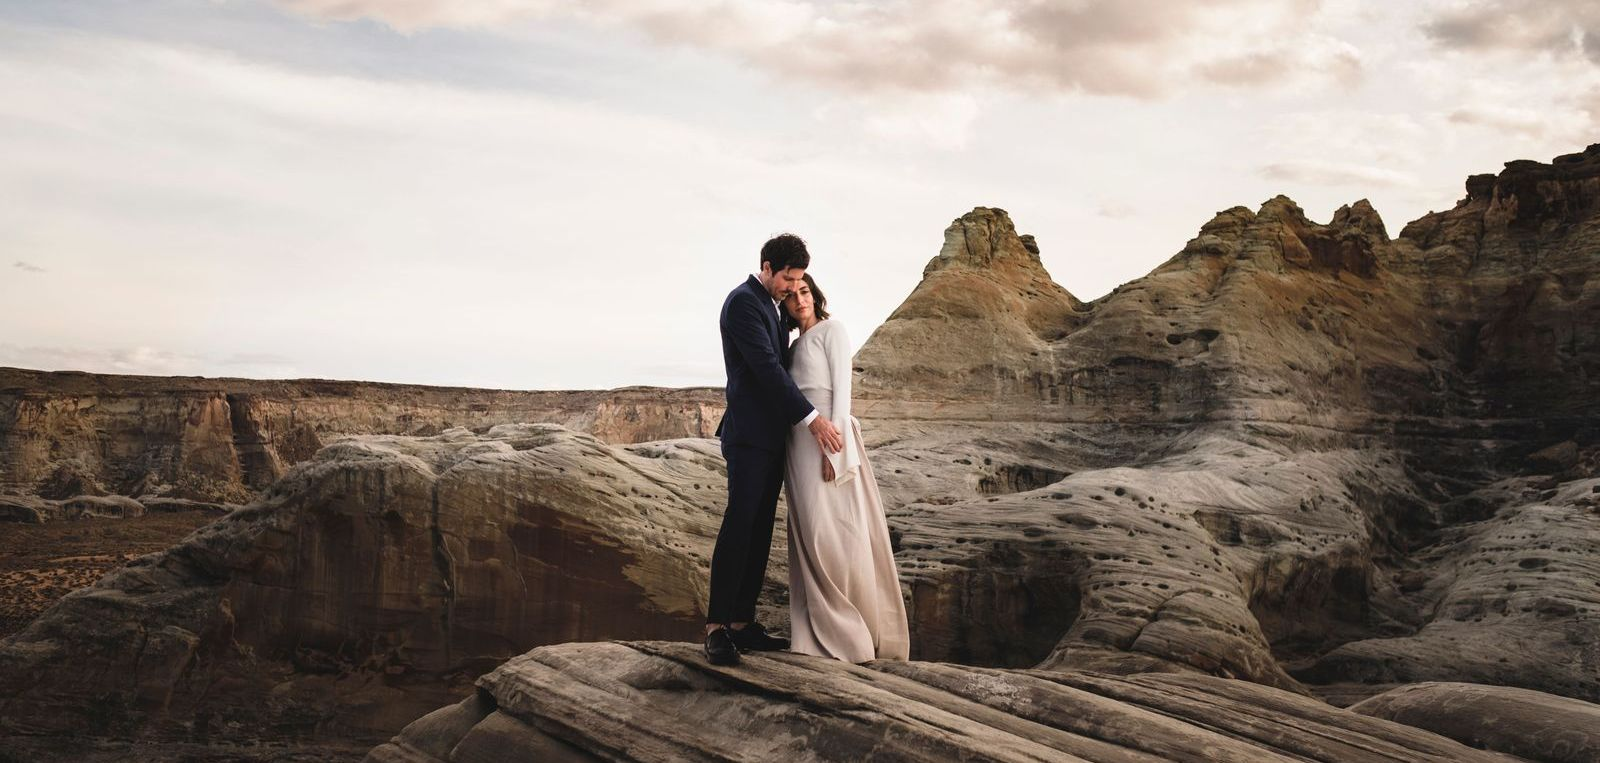 This Antelope Canyon Elopement Was All About Fashion, Photography & the Couple